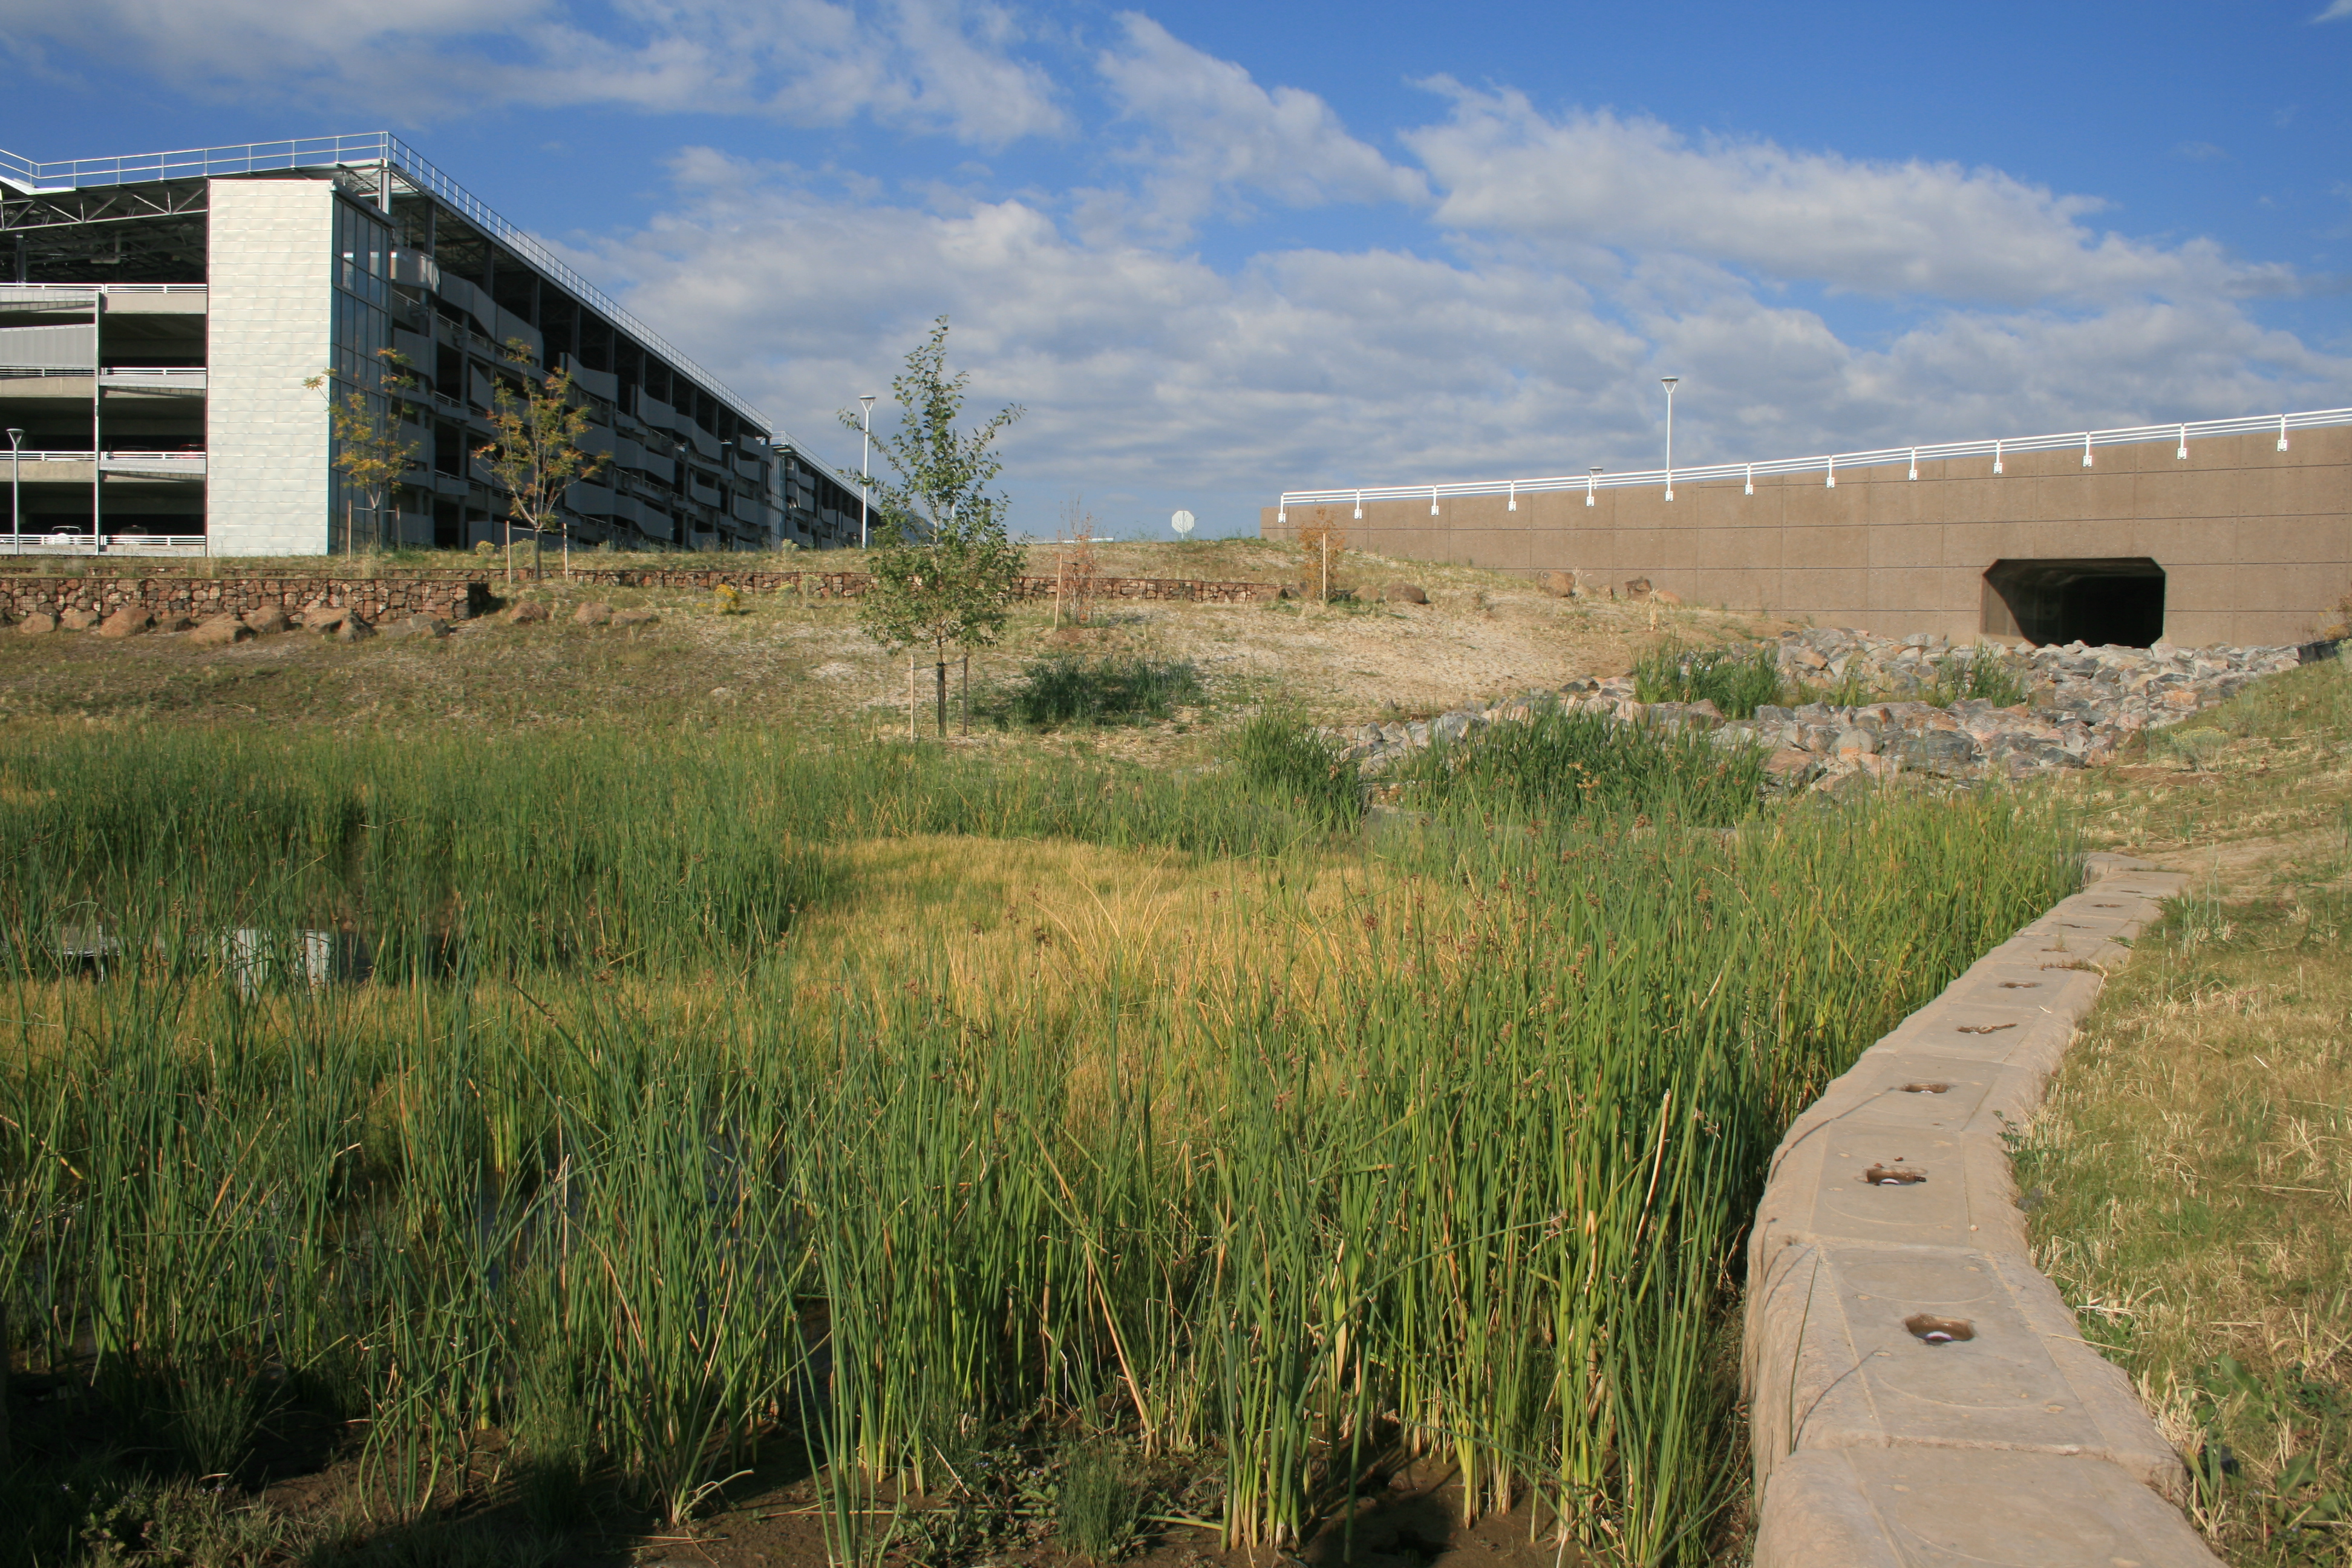 Grasscrete - NREL Detention Pond - 02